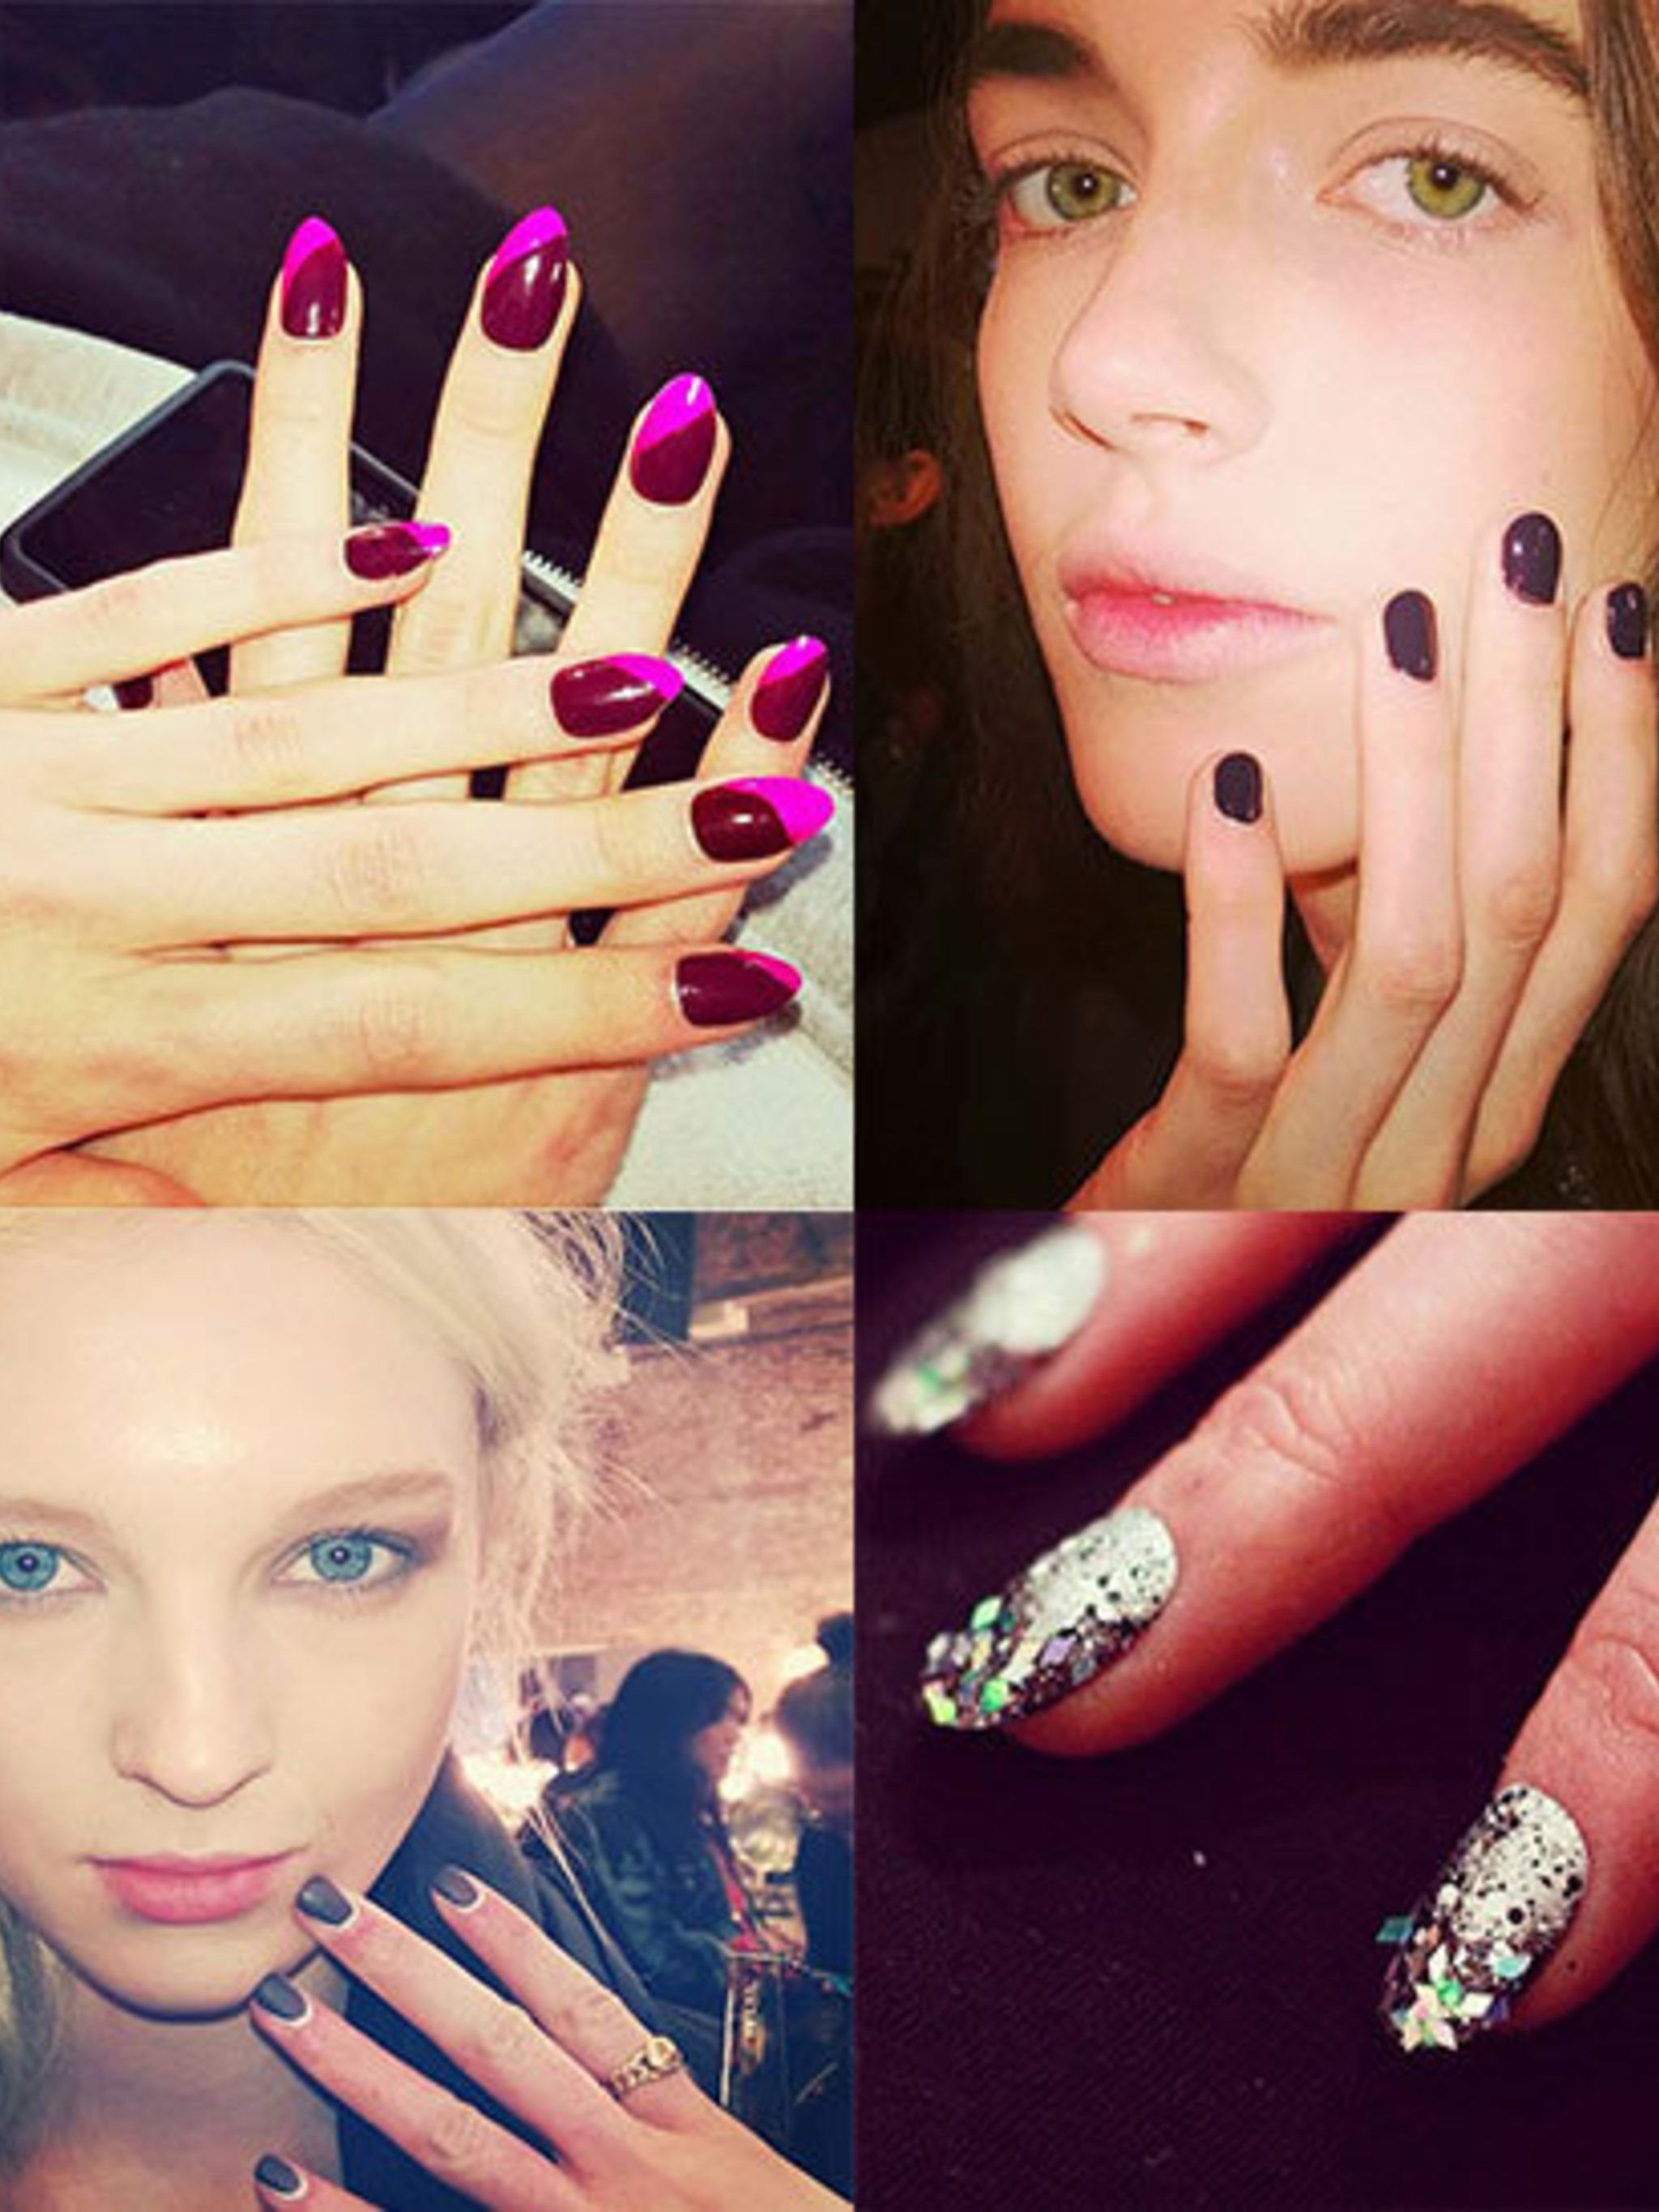 "<p>We were backstage in all four cities <a href=""https://twitter.com/ELLEBEAUTYTEAM"">#NailWatching</a> our way through the shows to bring you our edit of the very best nail looks.</p><p><a href=""http://www.elleuk.com/beauty/hair/hair-features/best-hair-au"